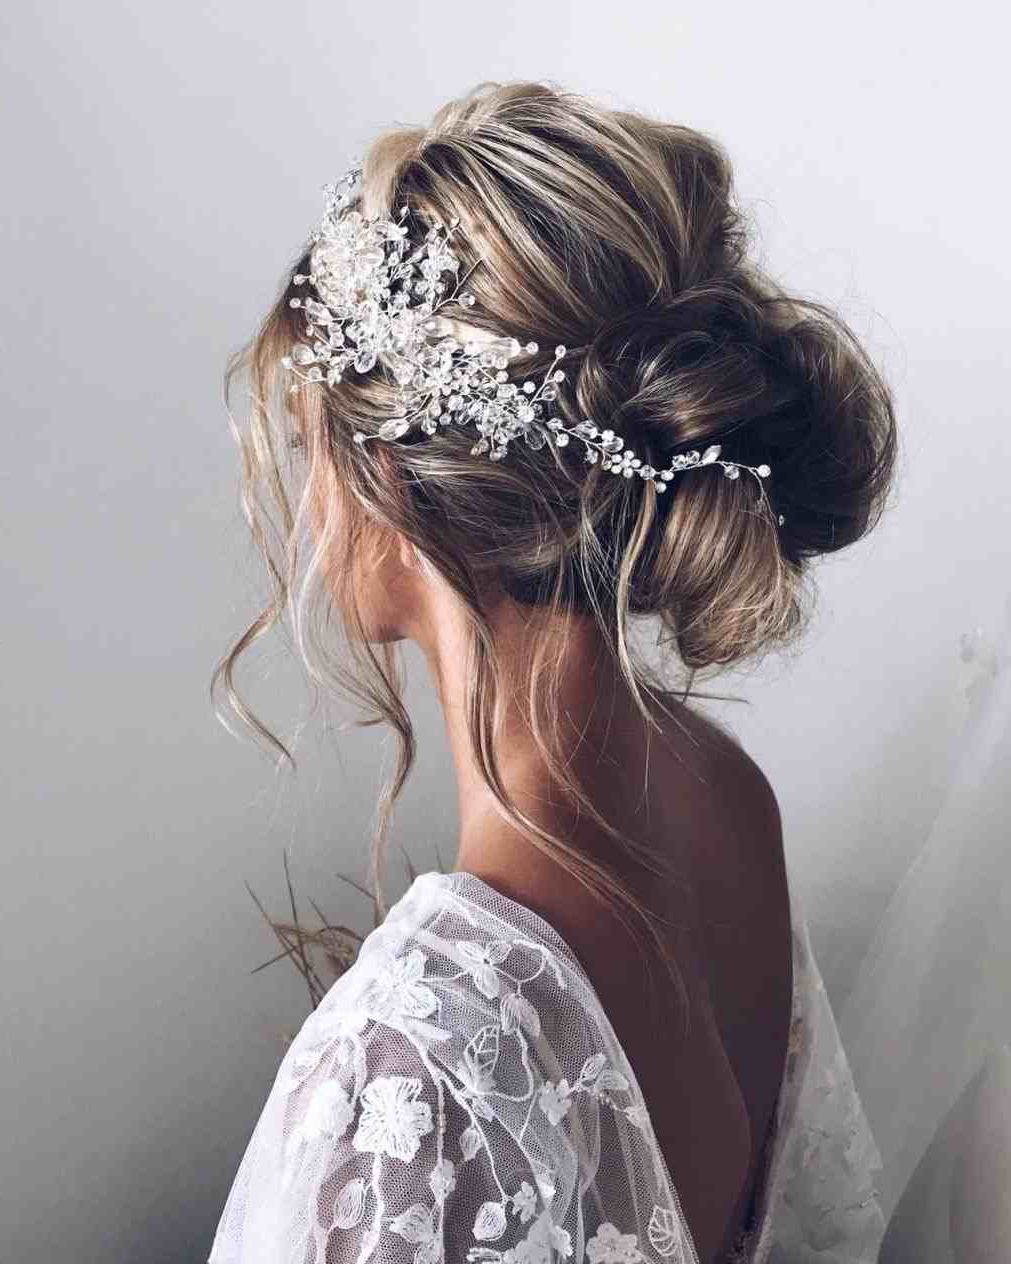 Relaxed Wedding Hairstyles Bohemian Updo Wedding Hair Bunulyana Throughout Recent Woven Updos With Tendrils For Wedding (View 4 of 20)